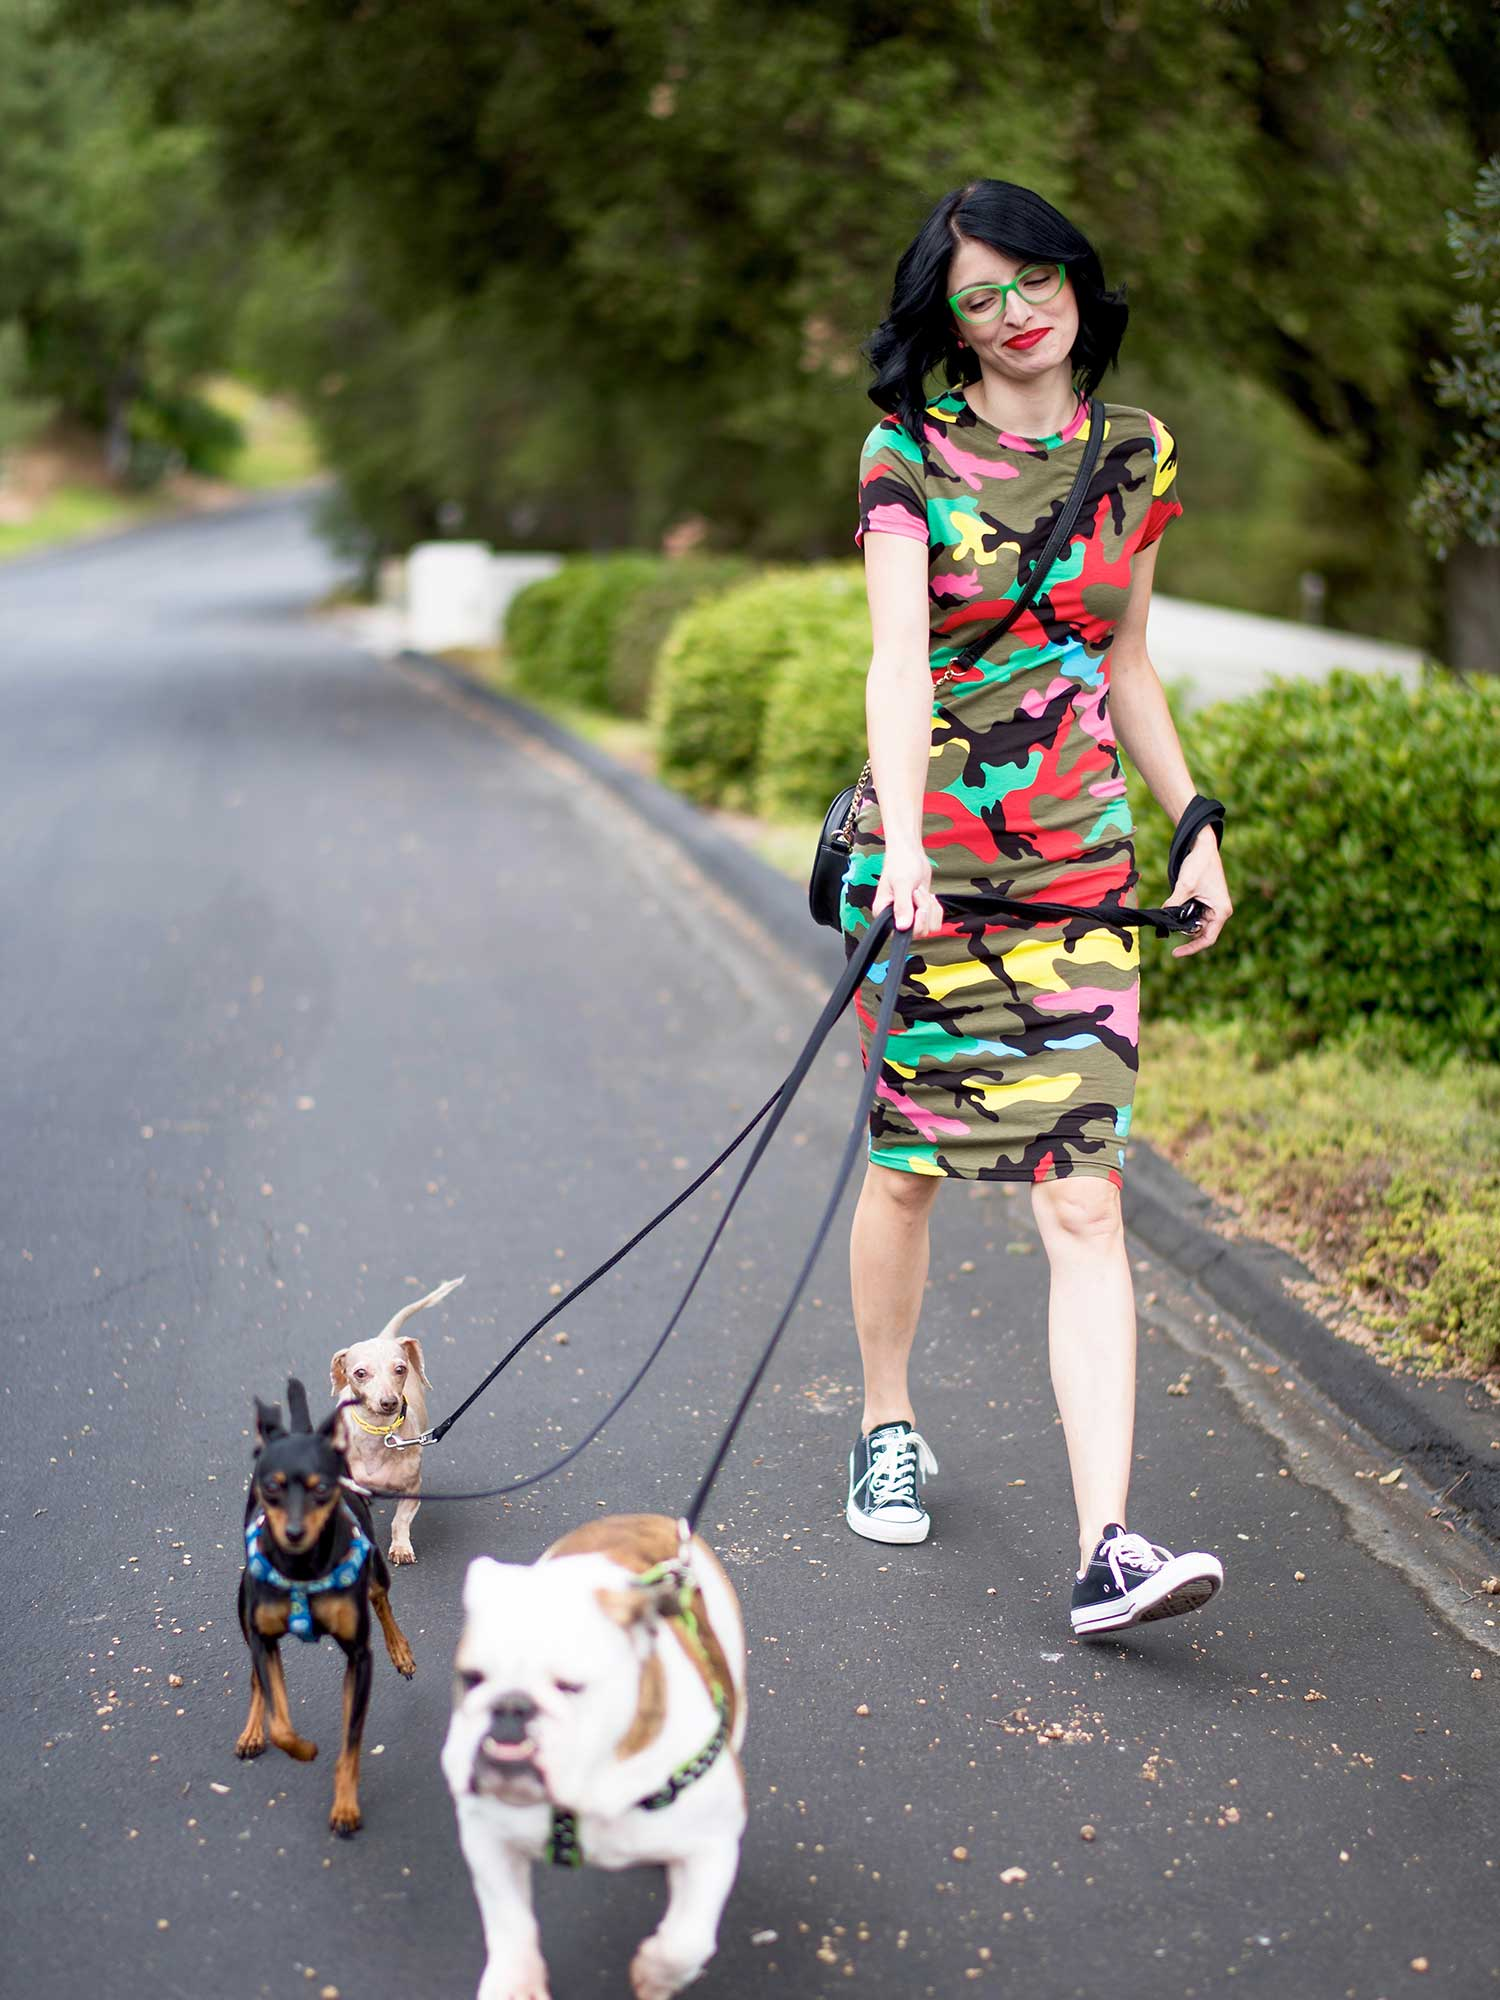 jenna-pilant-san-diego-fashion-blogger-lucky-little-mustardseed-how-to-wear-colors-in-fall-camo-dress-romwe-5